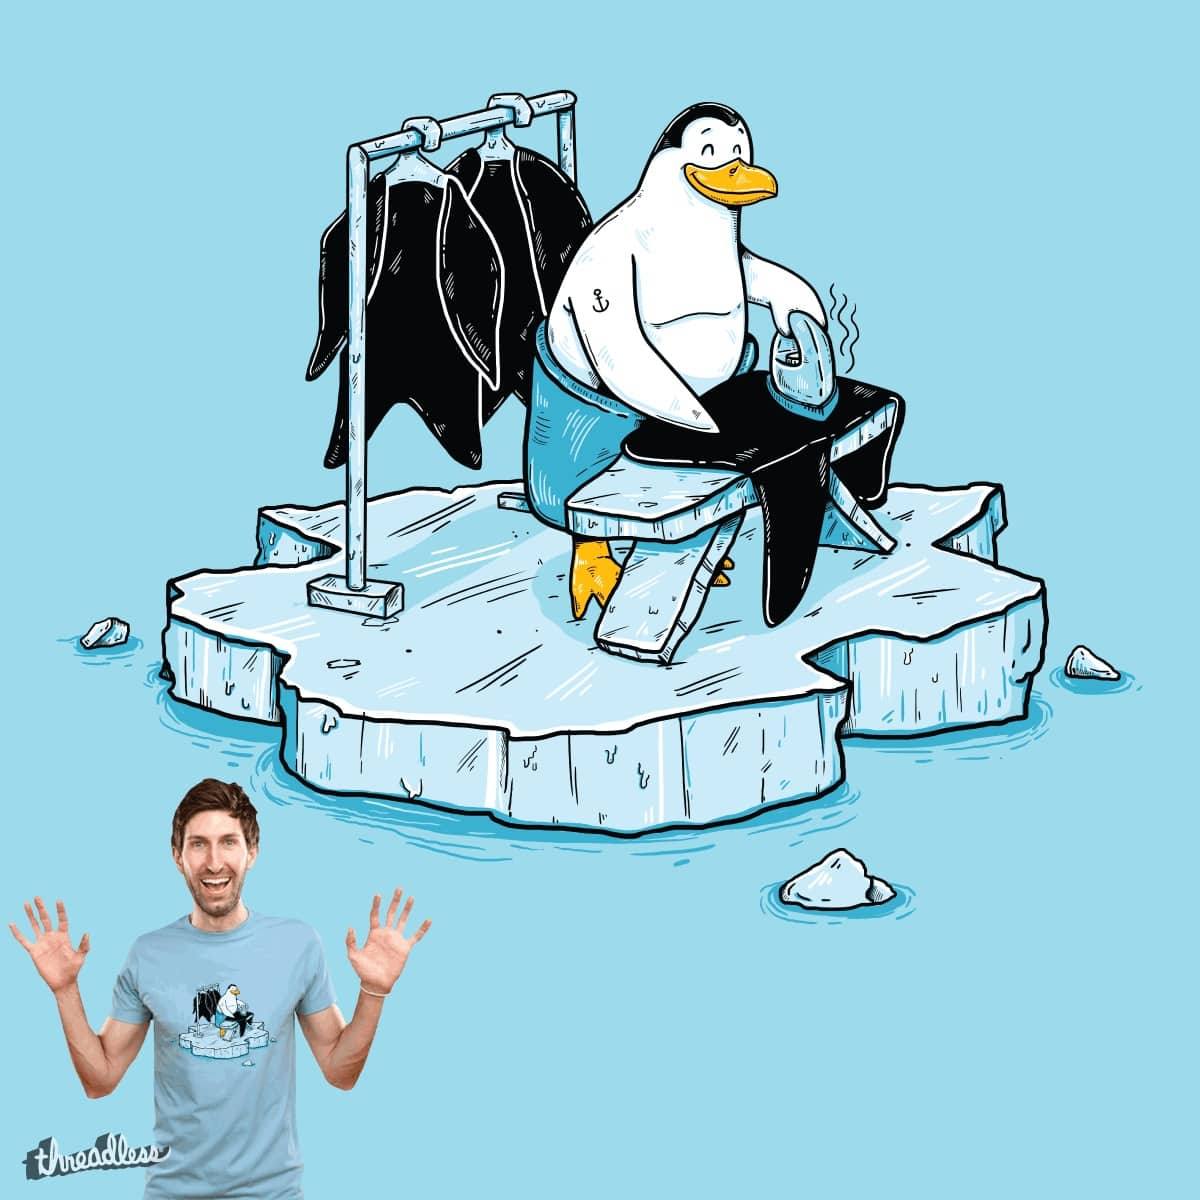 Global warming by BuyoDesign on Threadless